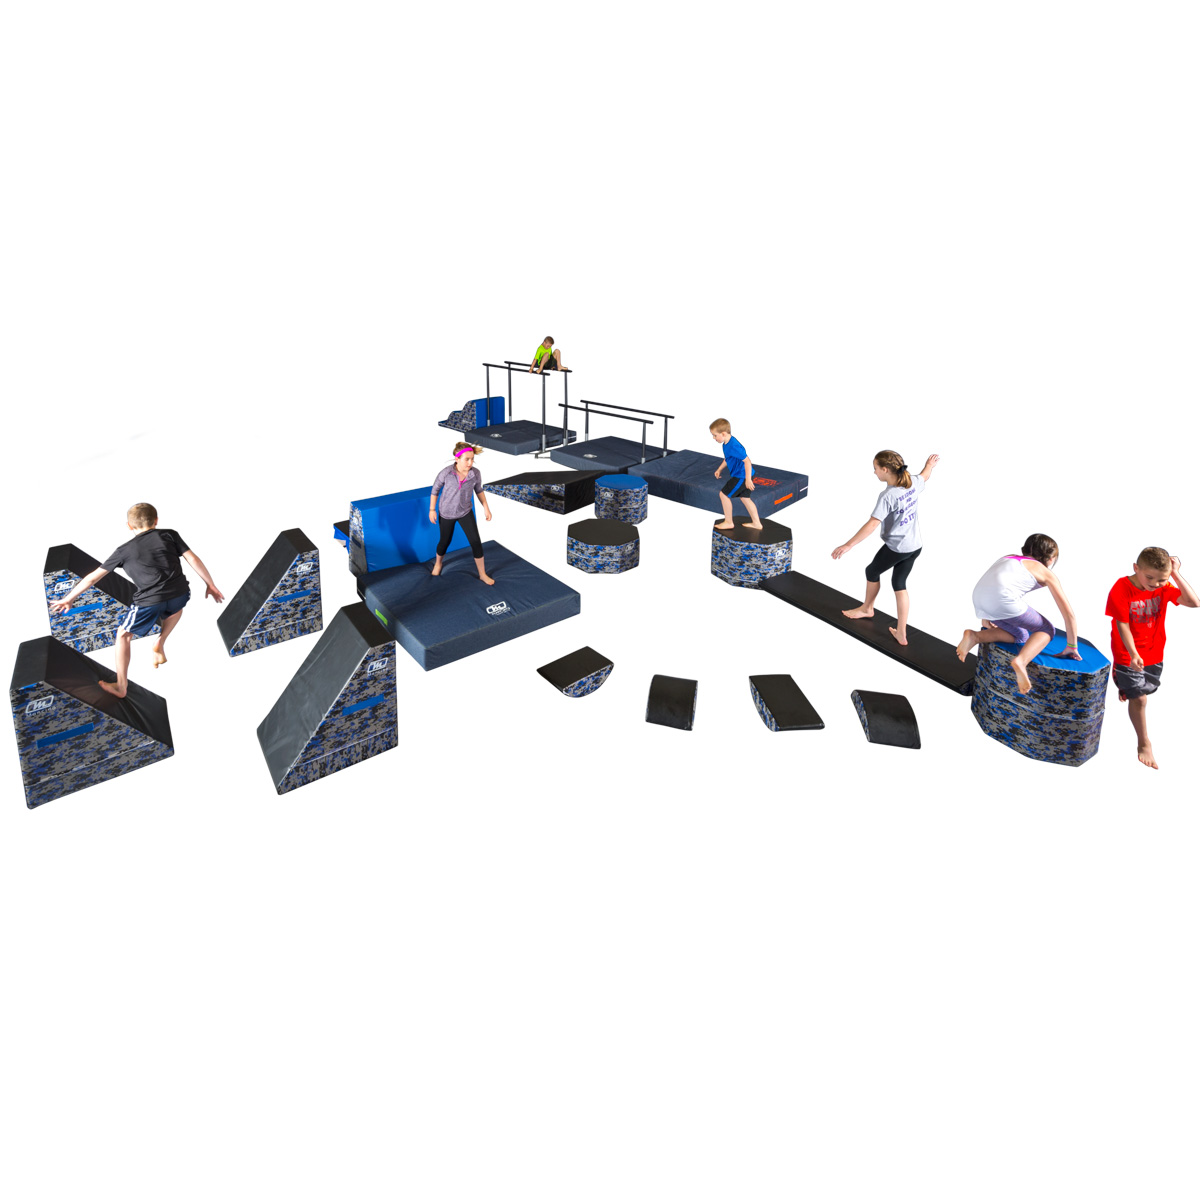 course or circuit option for ninja warrior fitness items